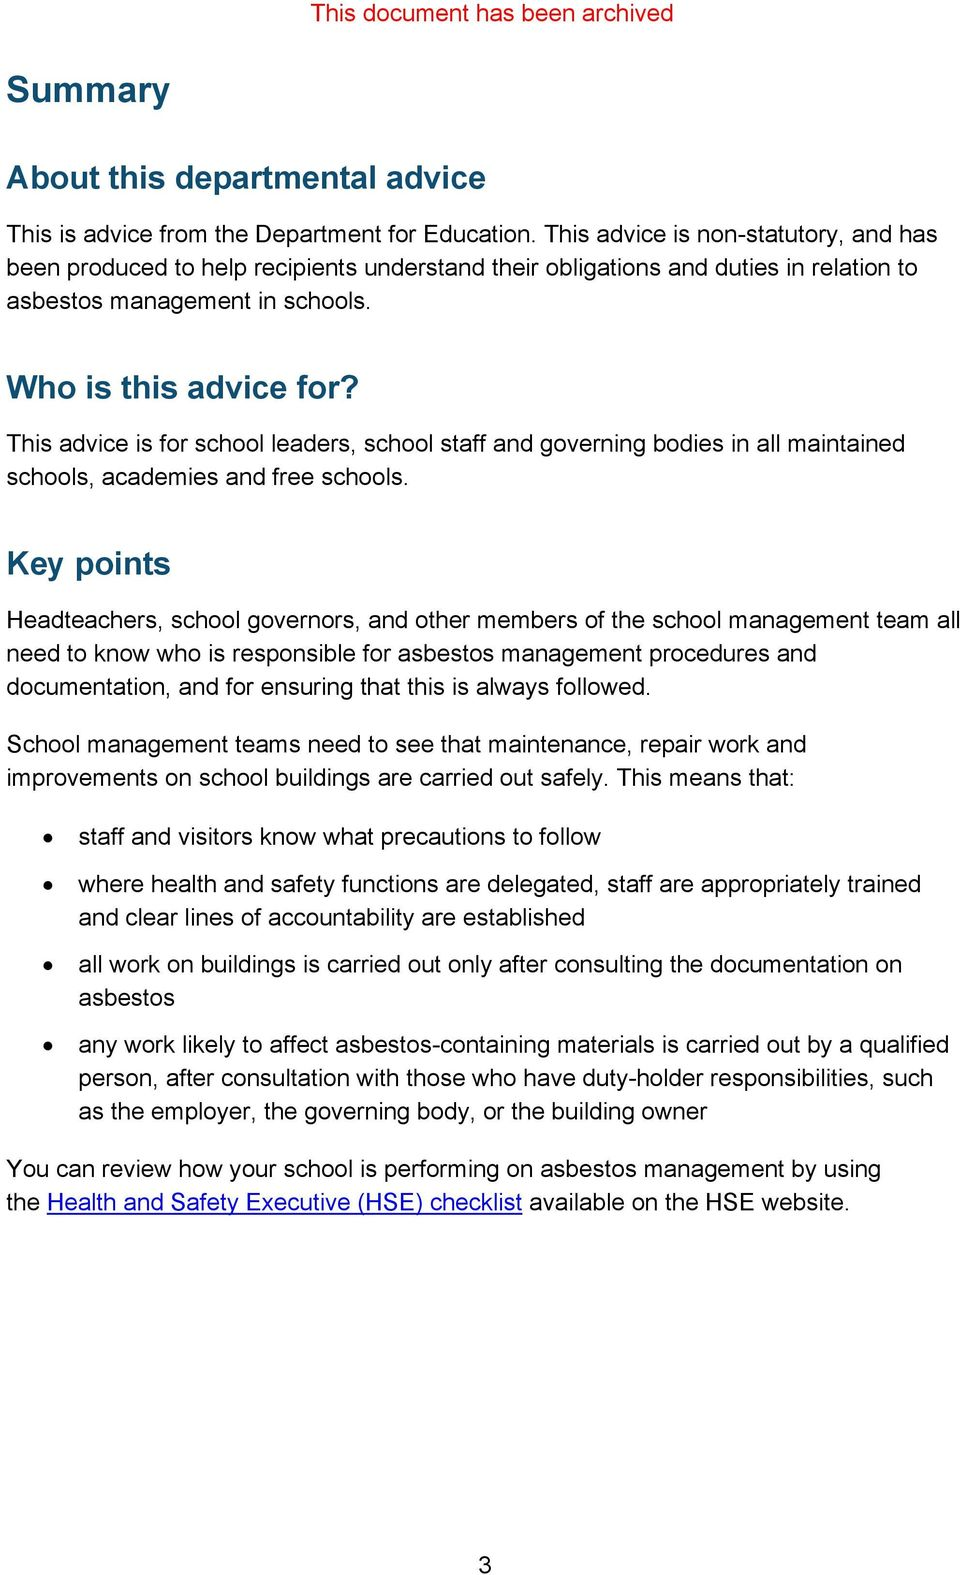 This advice is for school leaders, school staff and governing bodies in all maintained schools, academies and free schools.